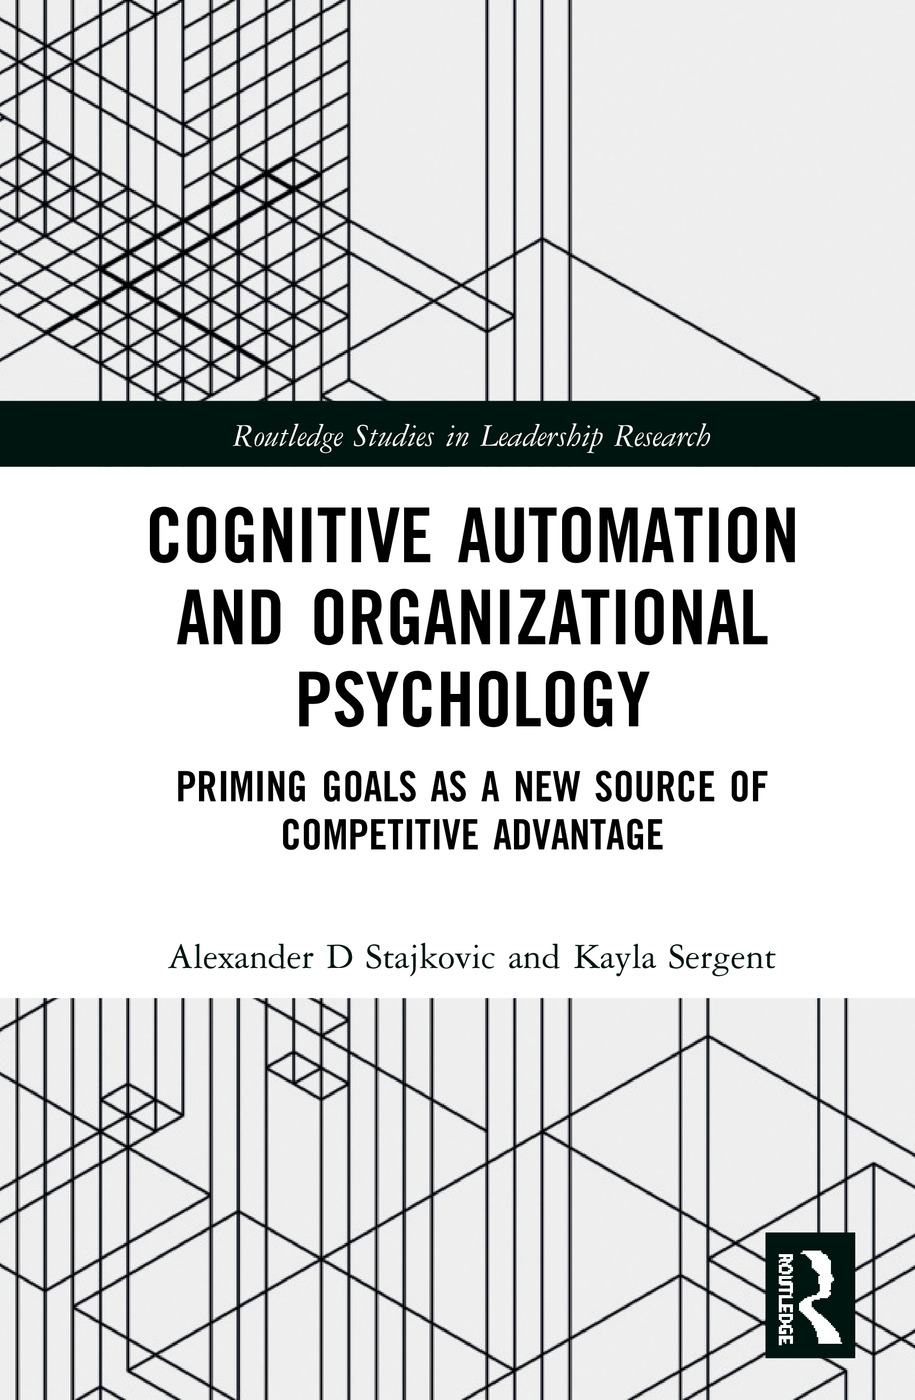 Cognitive Automation and Organizational Psychology: Priming Goals as a New Source of Competitive Advantage book cover